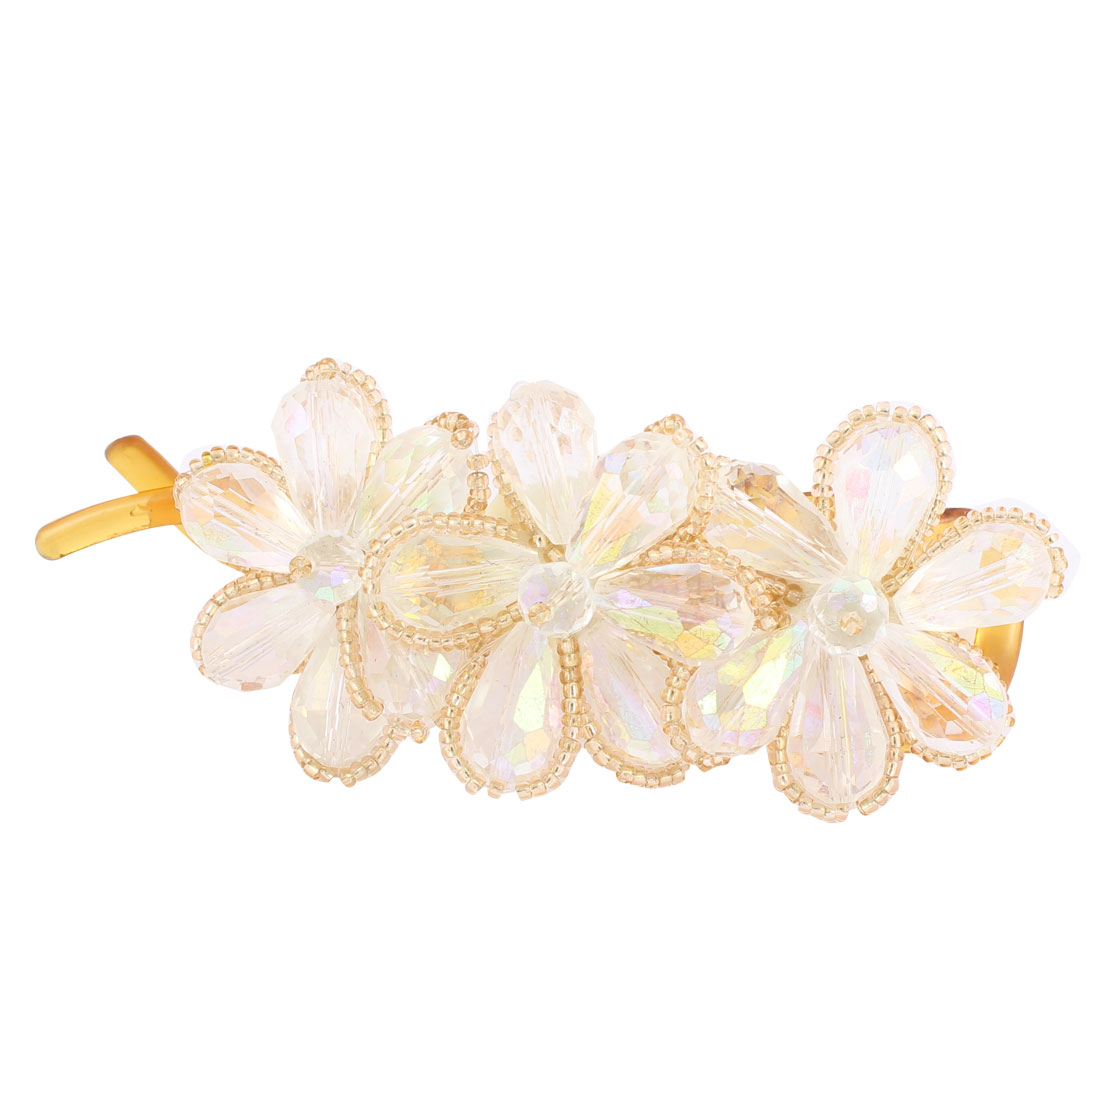 Lady Hairstyle White Crystal Flower Shaped Banana Barrette Hairpin Hair Clips Clasp Beauty Makeup Tool